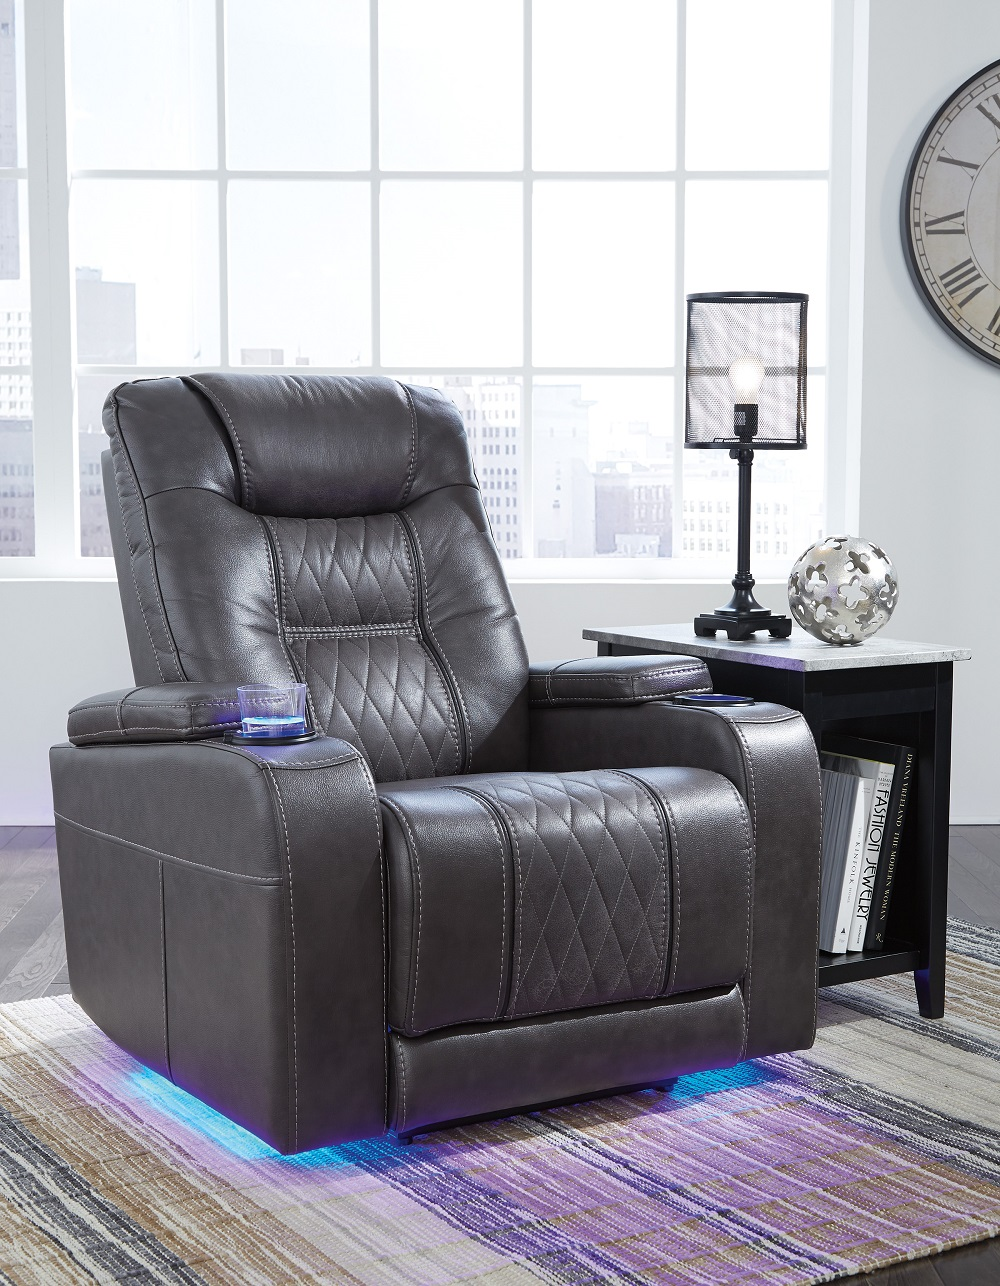 Composer Power Recliner With Adj Headrest Image